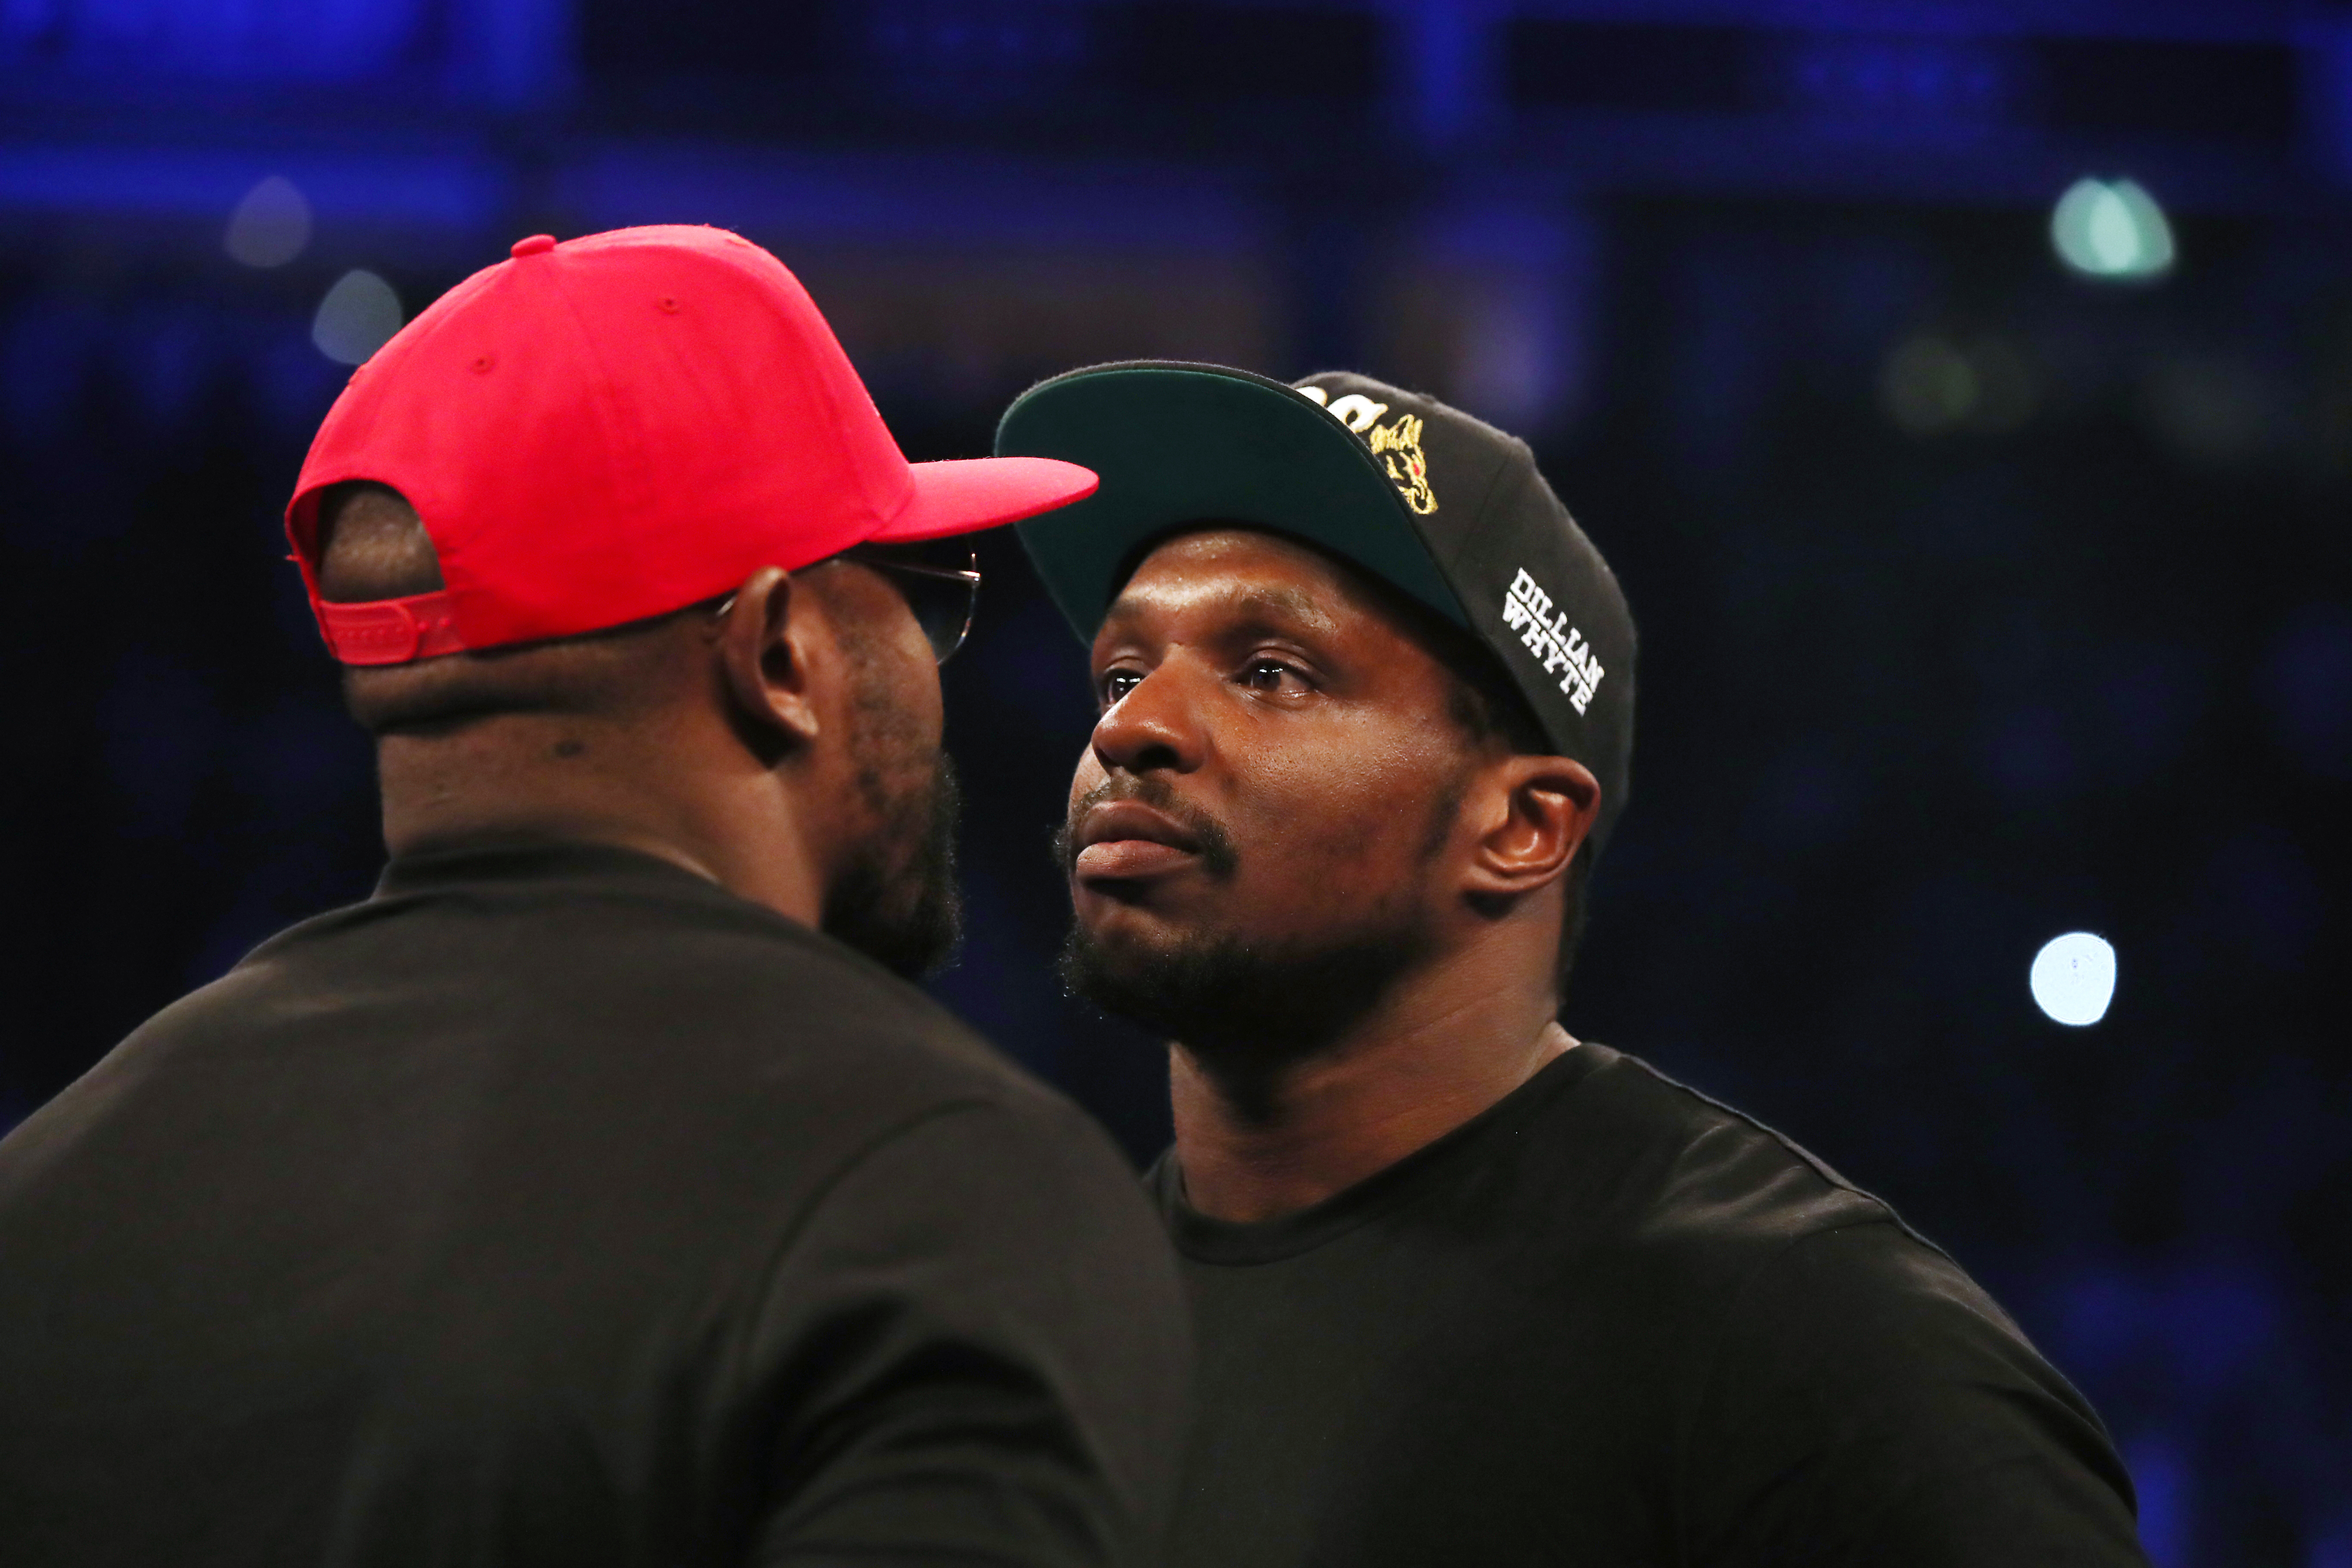 Whyte and Dereck Chisora square up. Image: PA Images